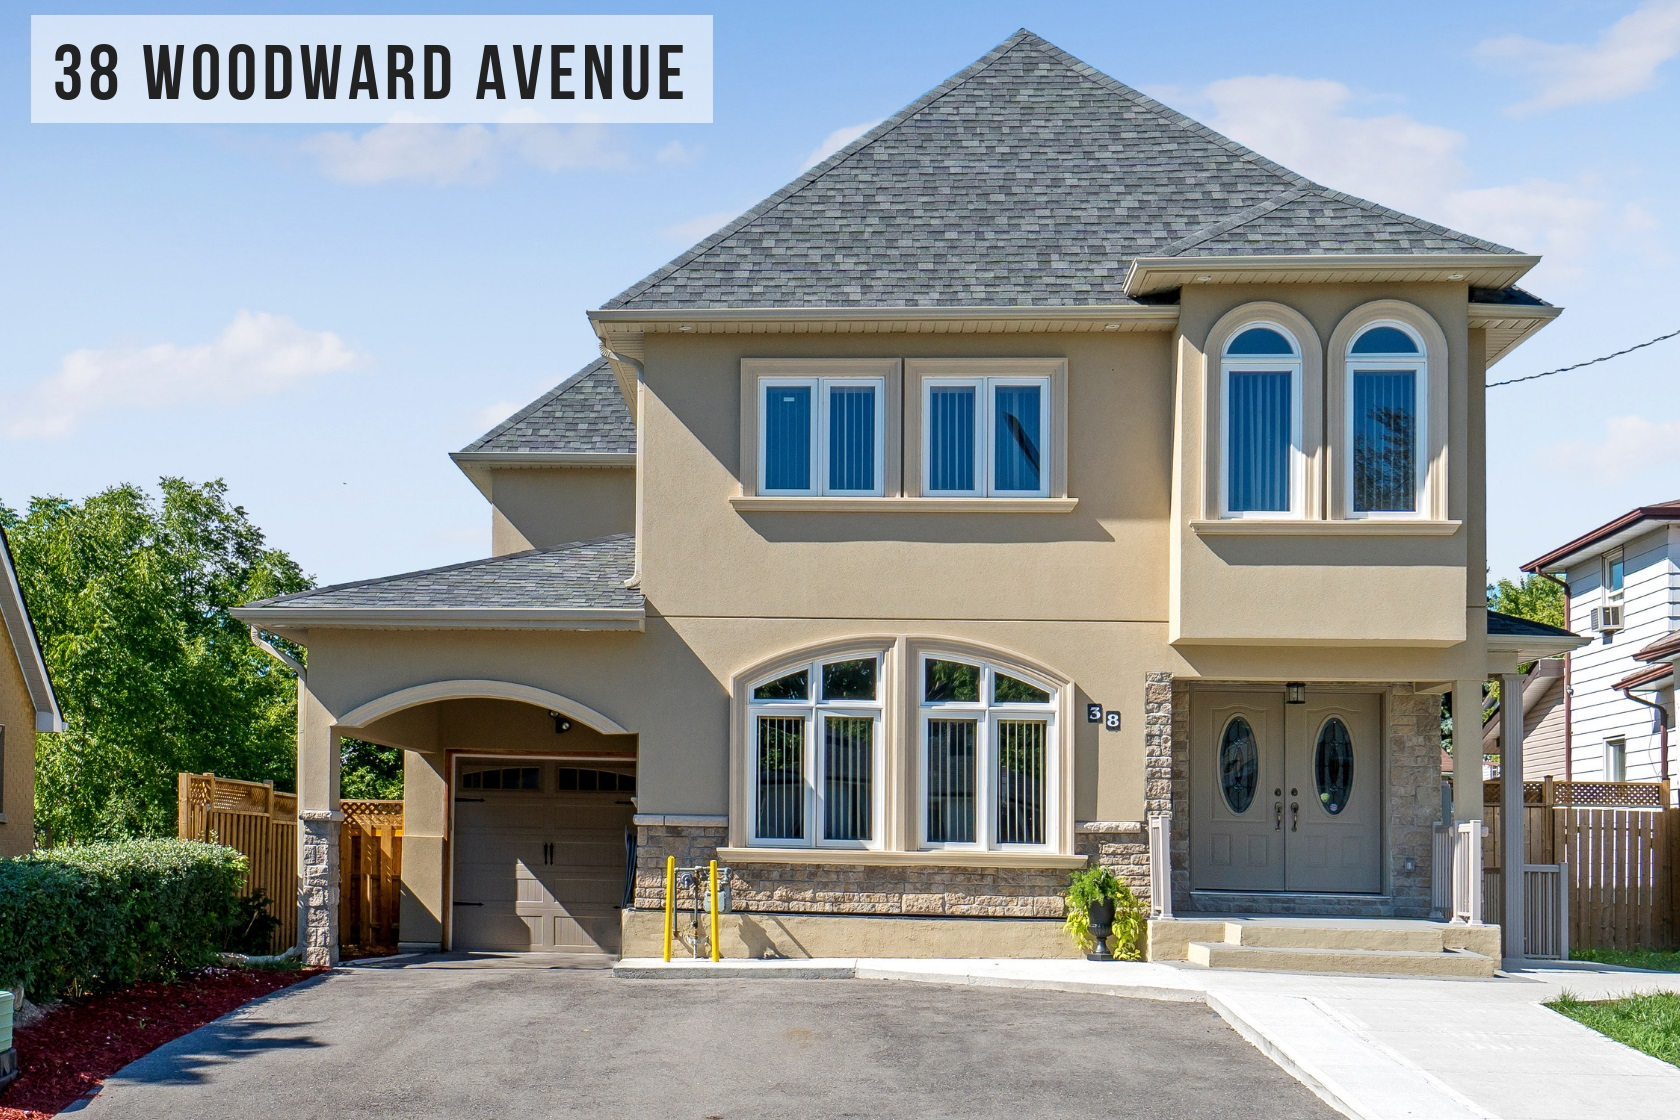 $1,248,800 • 38 Woodward Ave